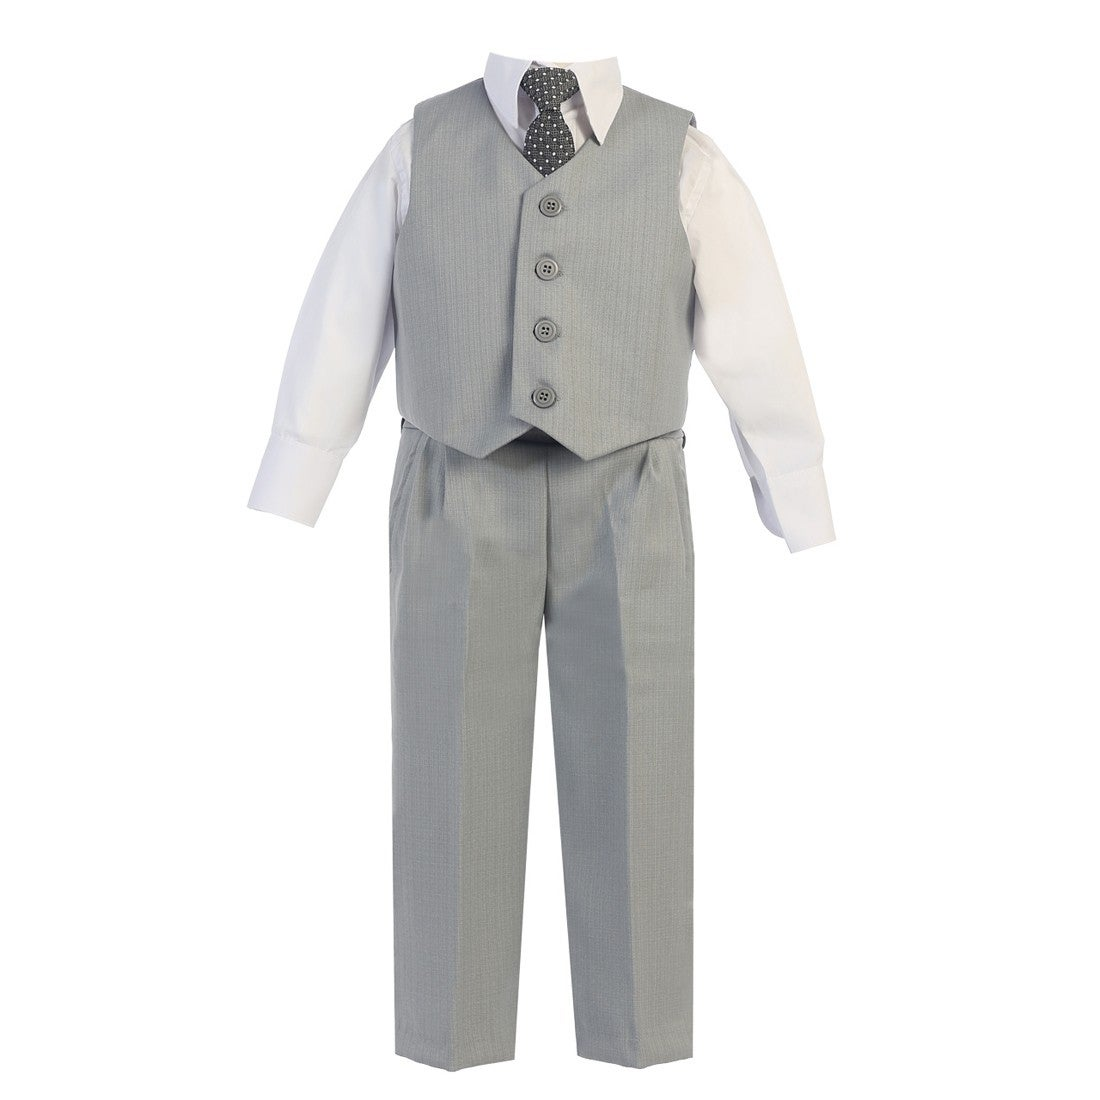 Big Boys Light Gray Vest Pants Special Occasion Easter Outfit Set 8-14 -  Overstock - 18120598